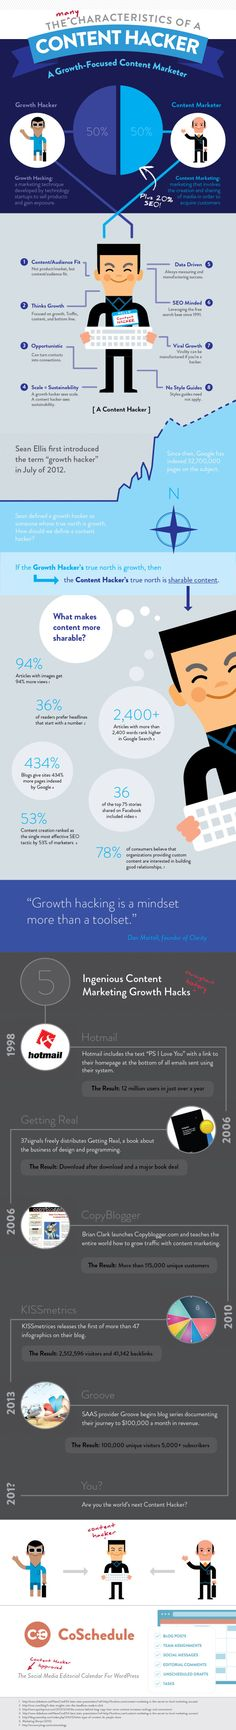 What is growth hacking, and what does it have to do with content marketing? You just might just be a content marketing growth hacker. Inbound Marketing, Marketing Digital, Content Marketing Strategy, Business Marketing, Internet Marketing, Online Marketing, Social Media Marketing, Affiliate Marketing, Marketing Technology